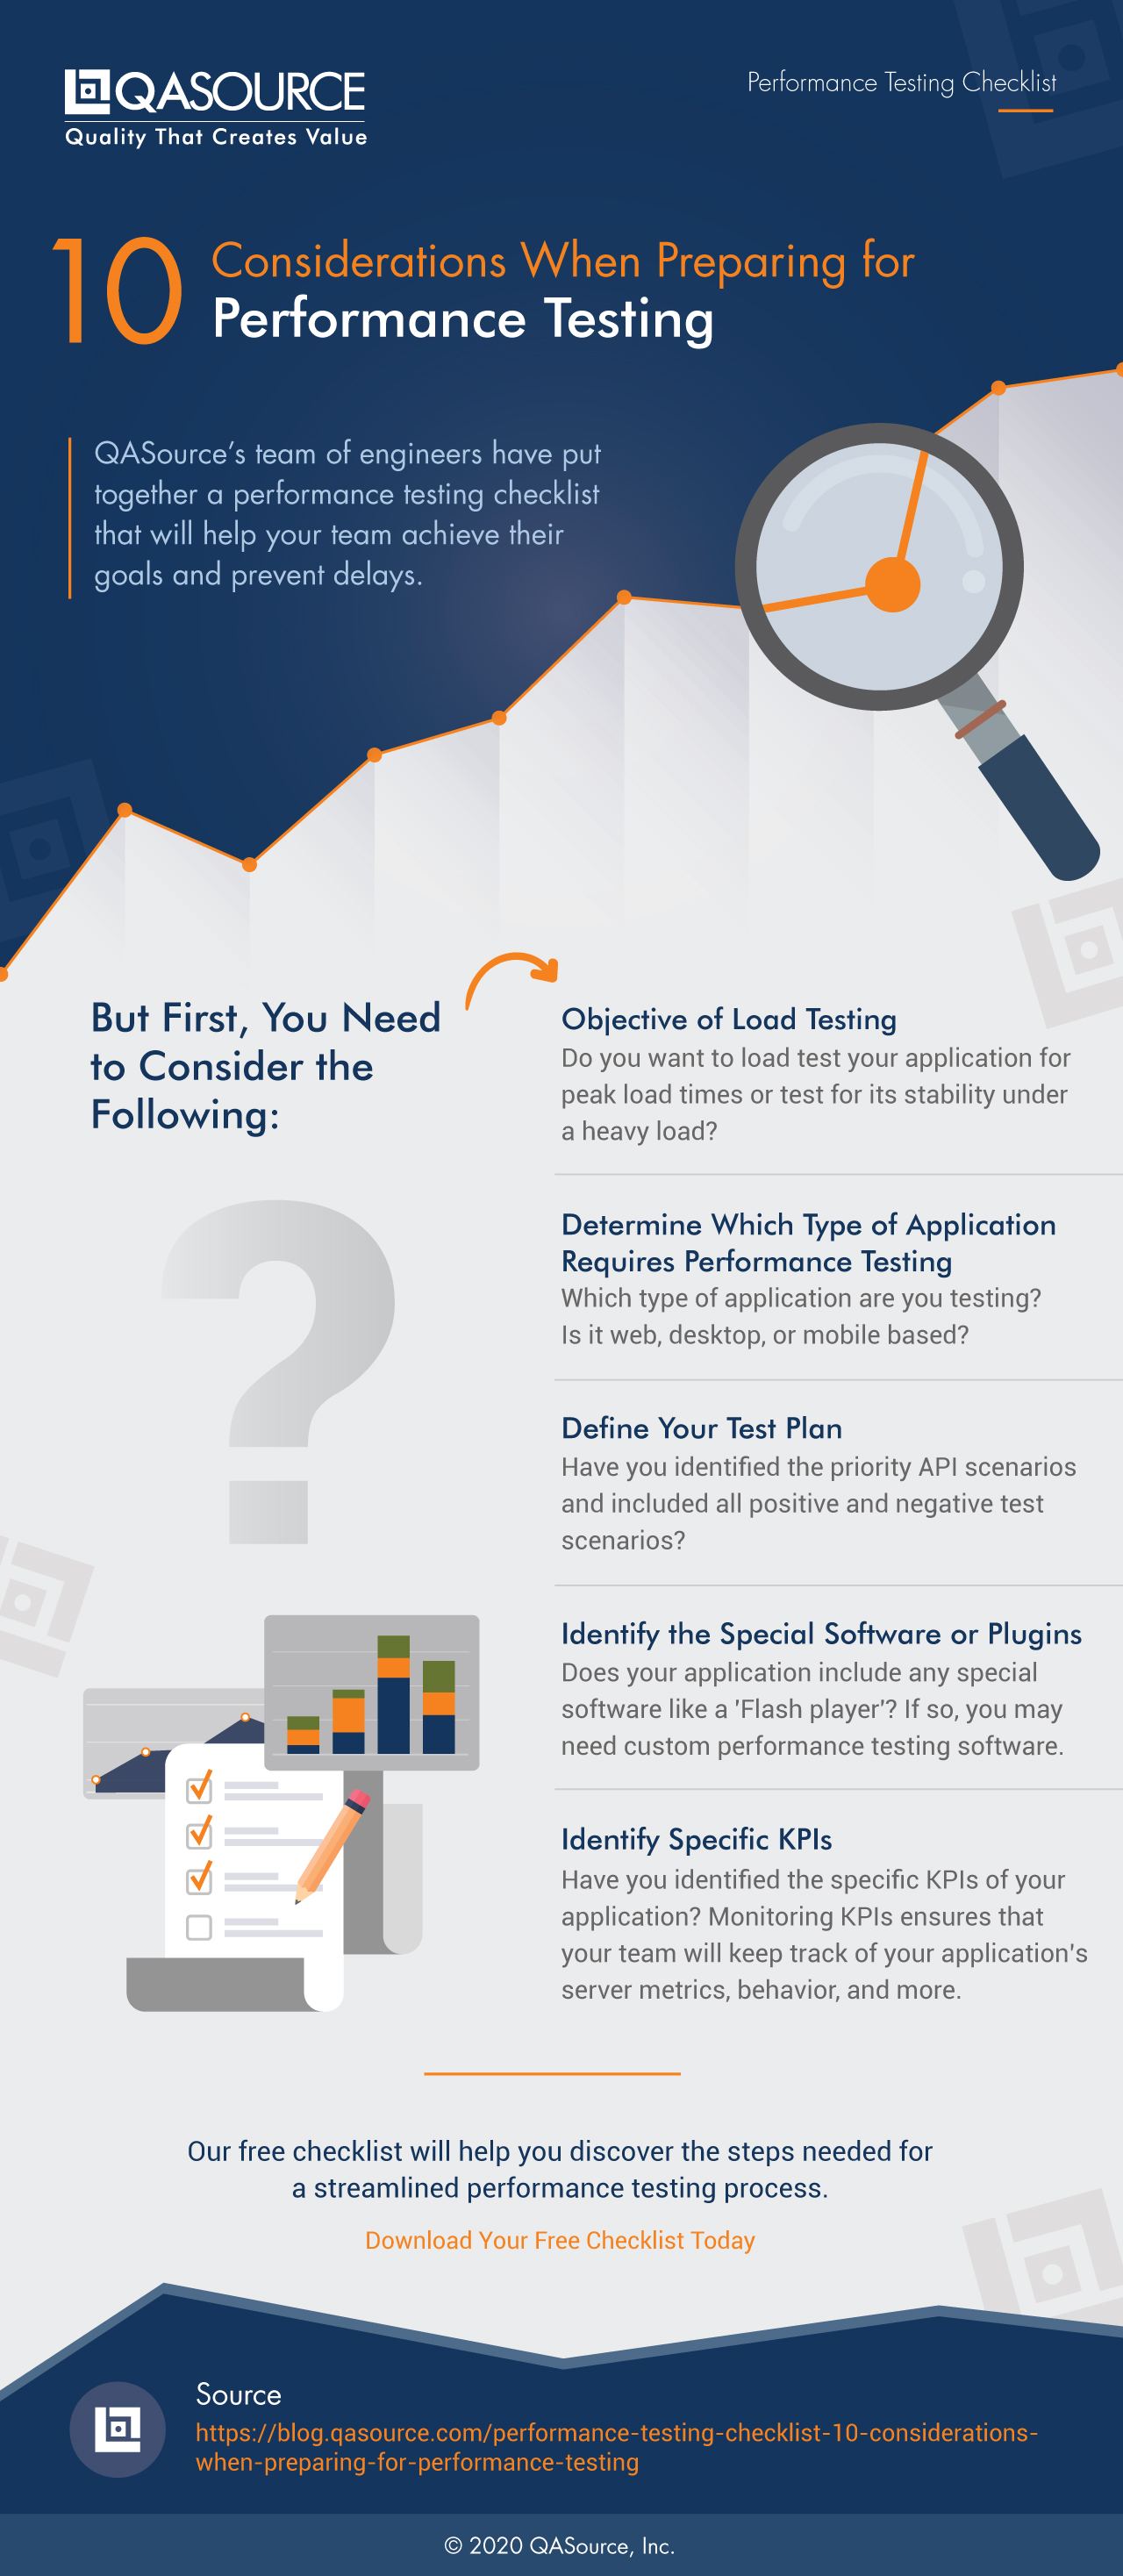 Performance Testing Checklist: 10 Considerations When Preparing for Performance Testing (Infographic)